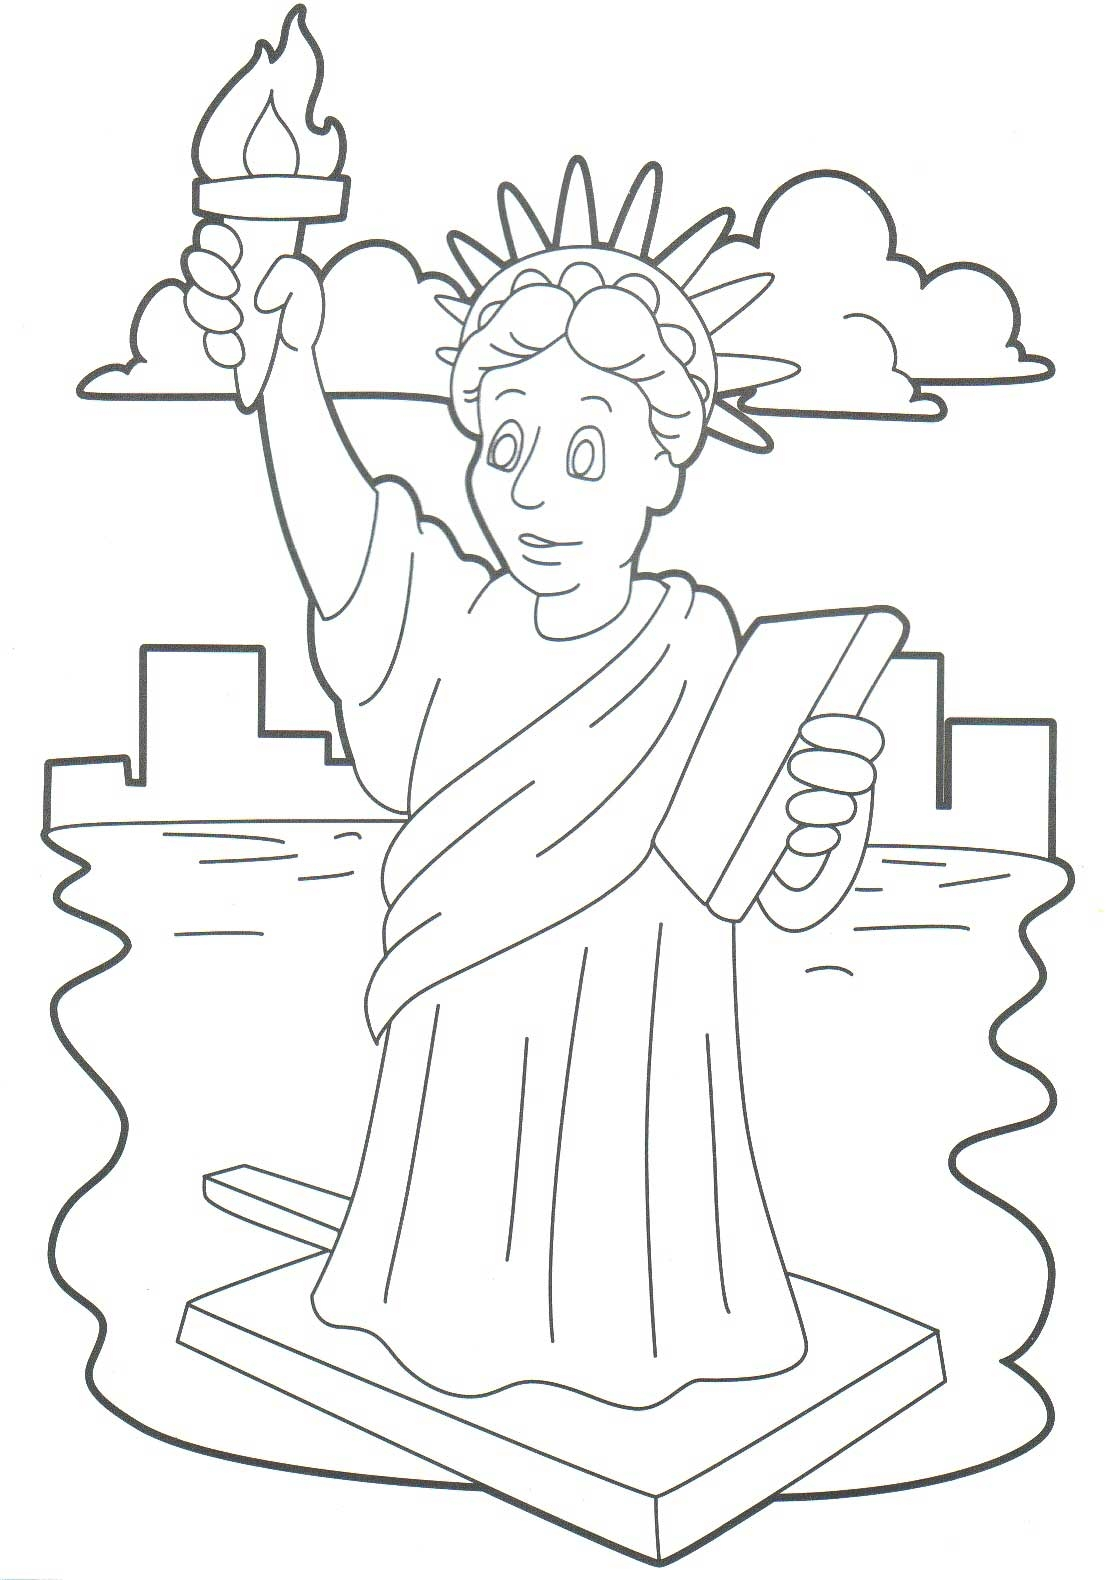 24 Statue Of Liberty Coloring Page Selection FREE COLORING PAGES